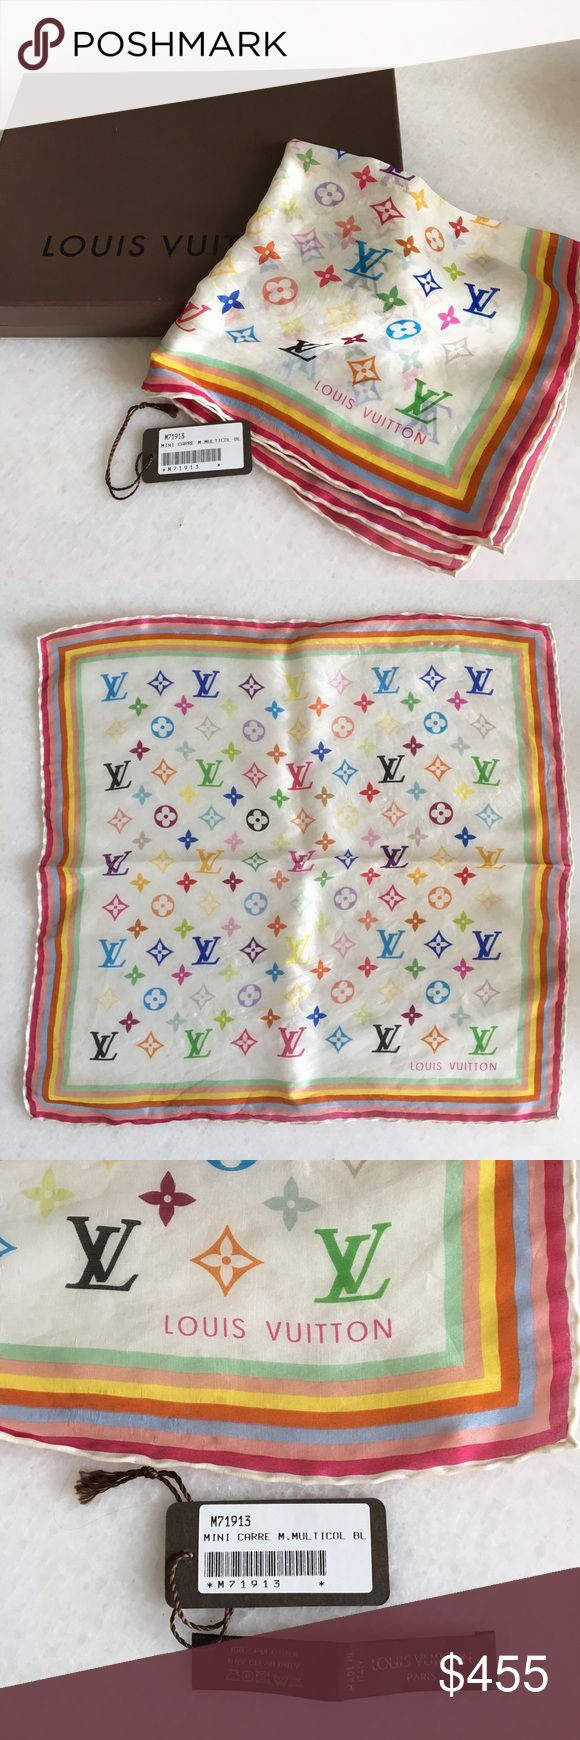 Authentic Louis Vuitton Mini Multicolor Silk Scarf This beautiful 100% silk Authentic Scarf from Louis Vuitton. The card measures at 17inches by 16inches. Louis Vuitton Accessories Scarves & Wraps